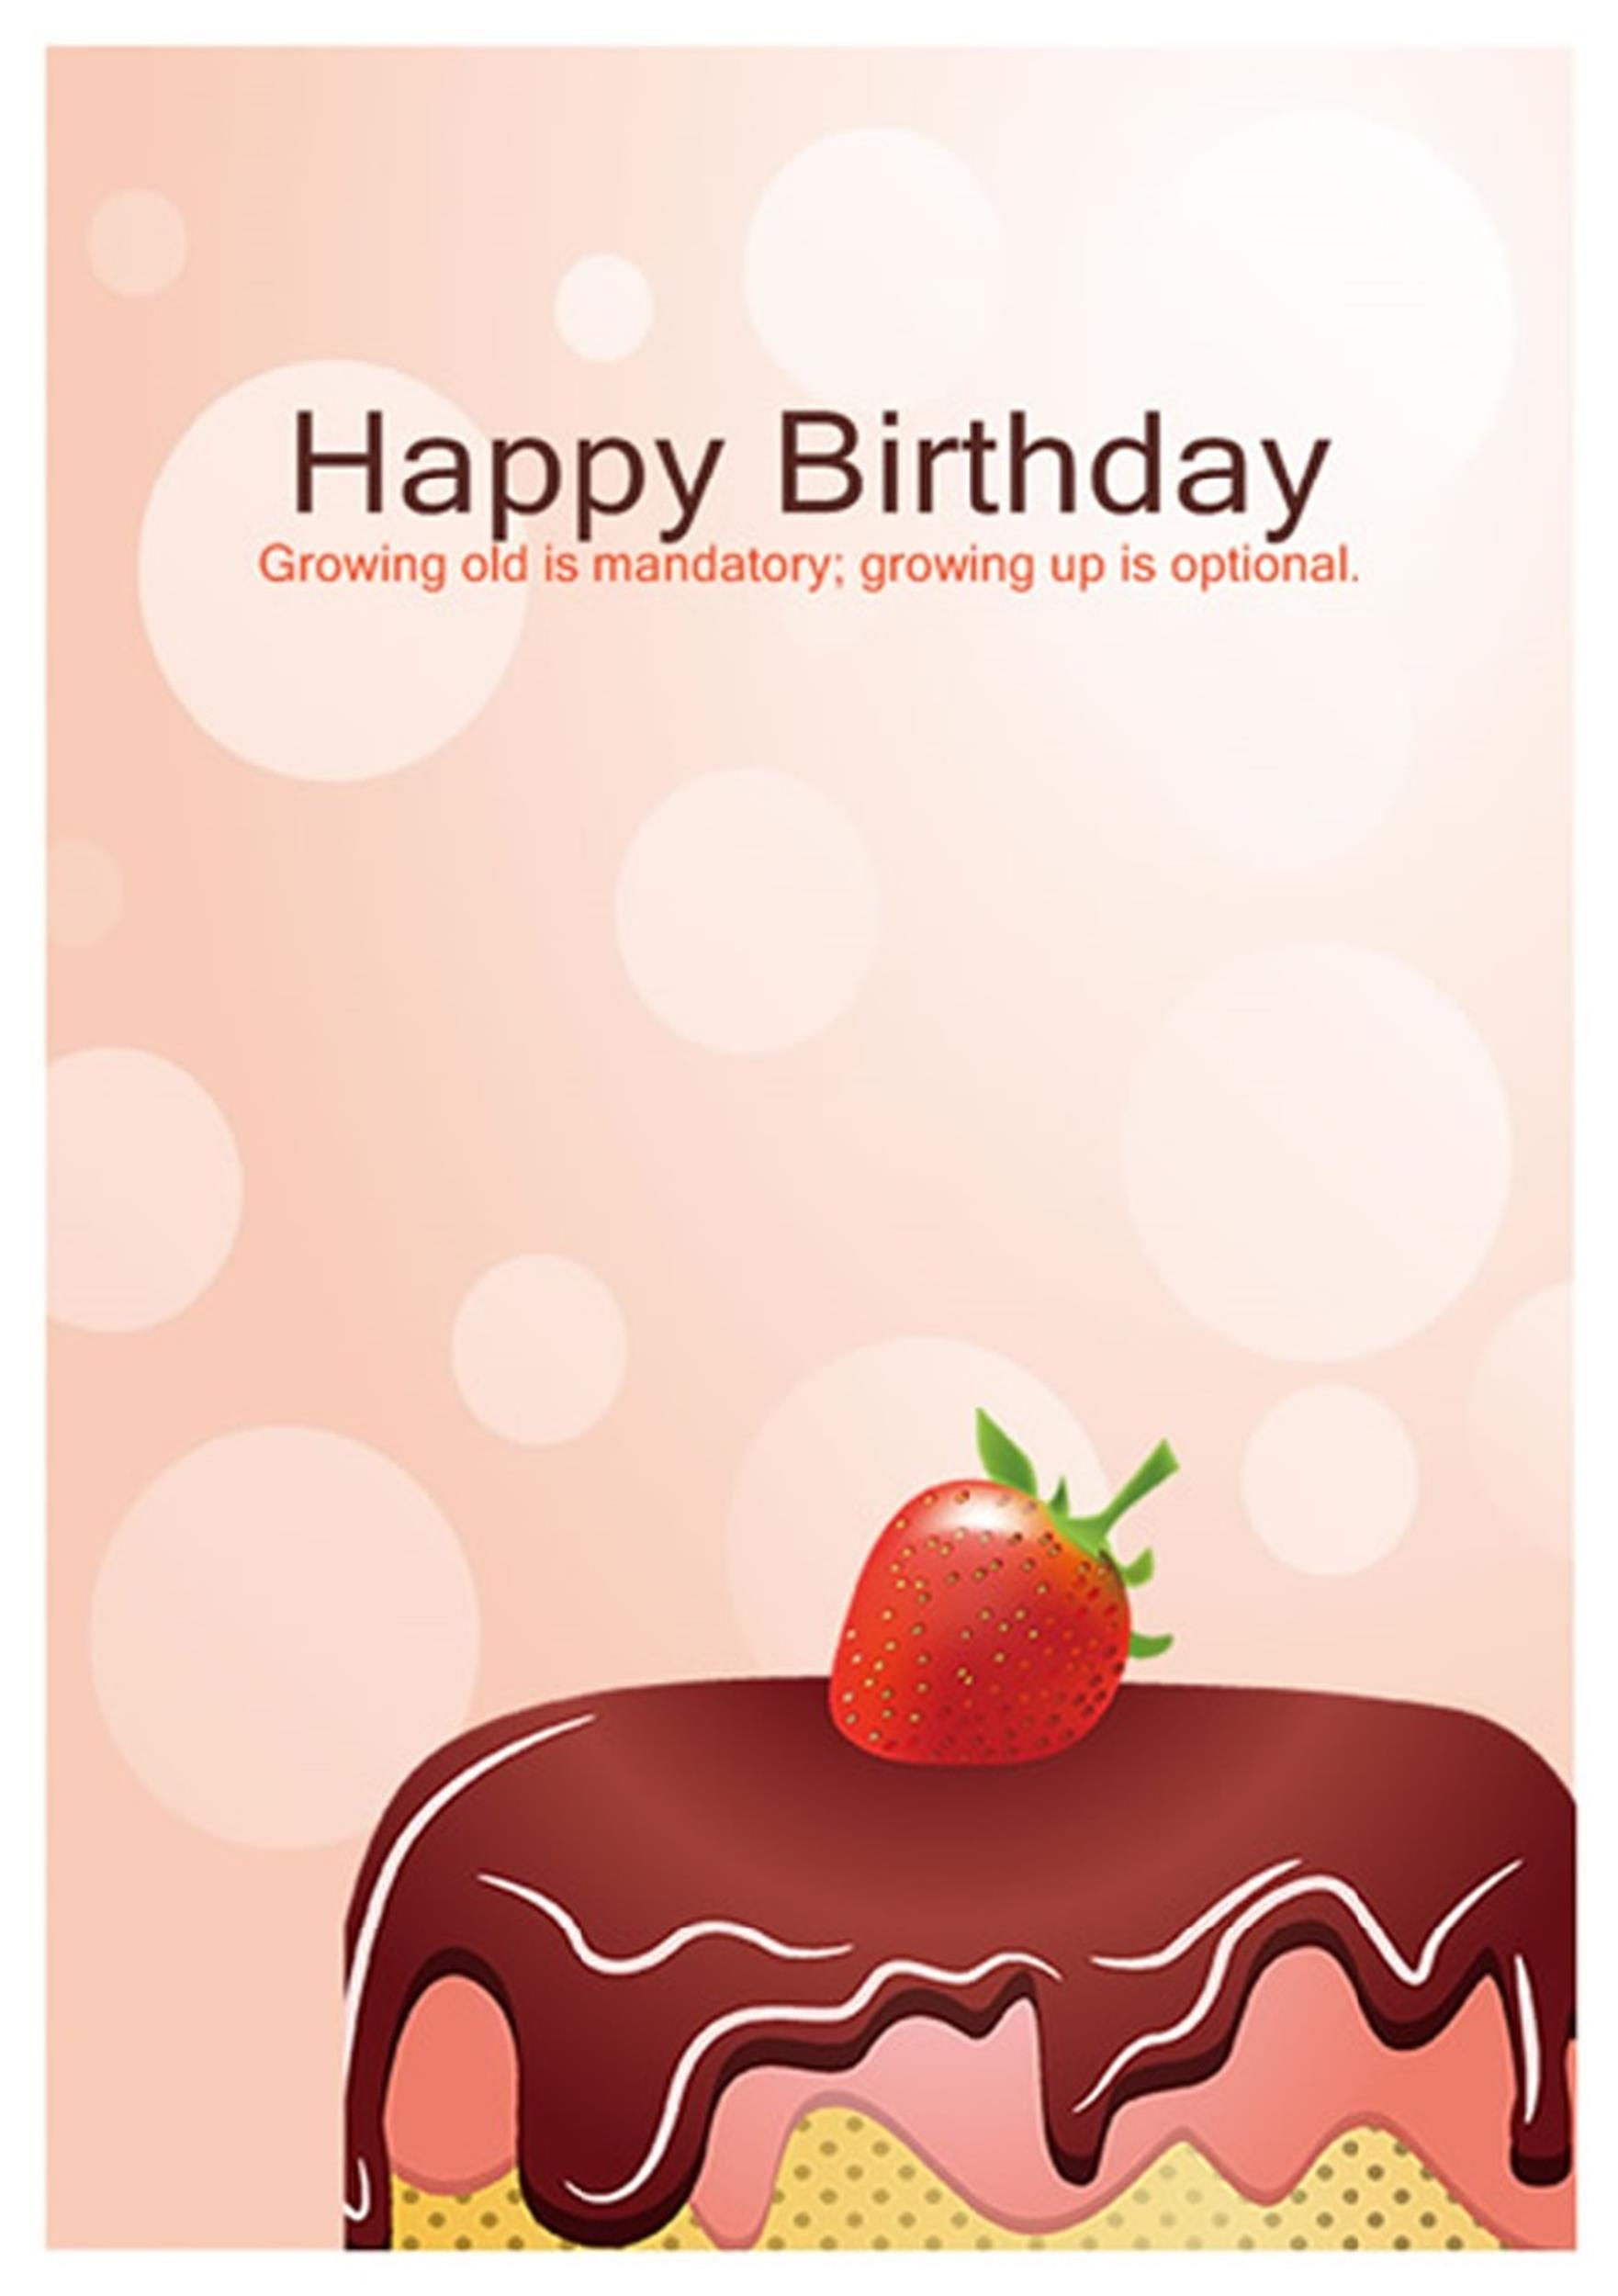 40 FREE Birthday Card Templates Template Lab – Birthday Greetings and Cards